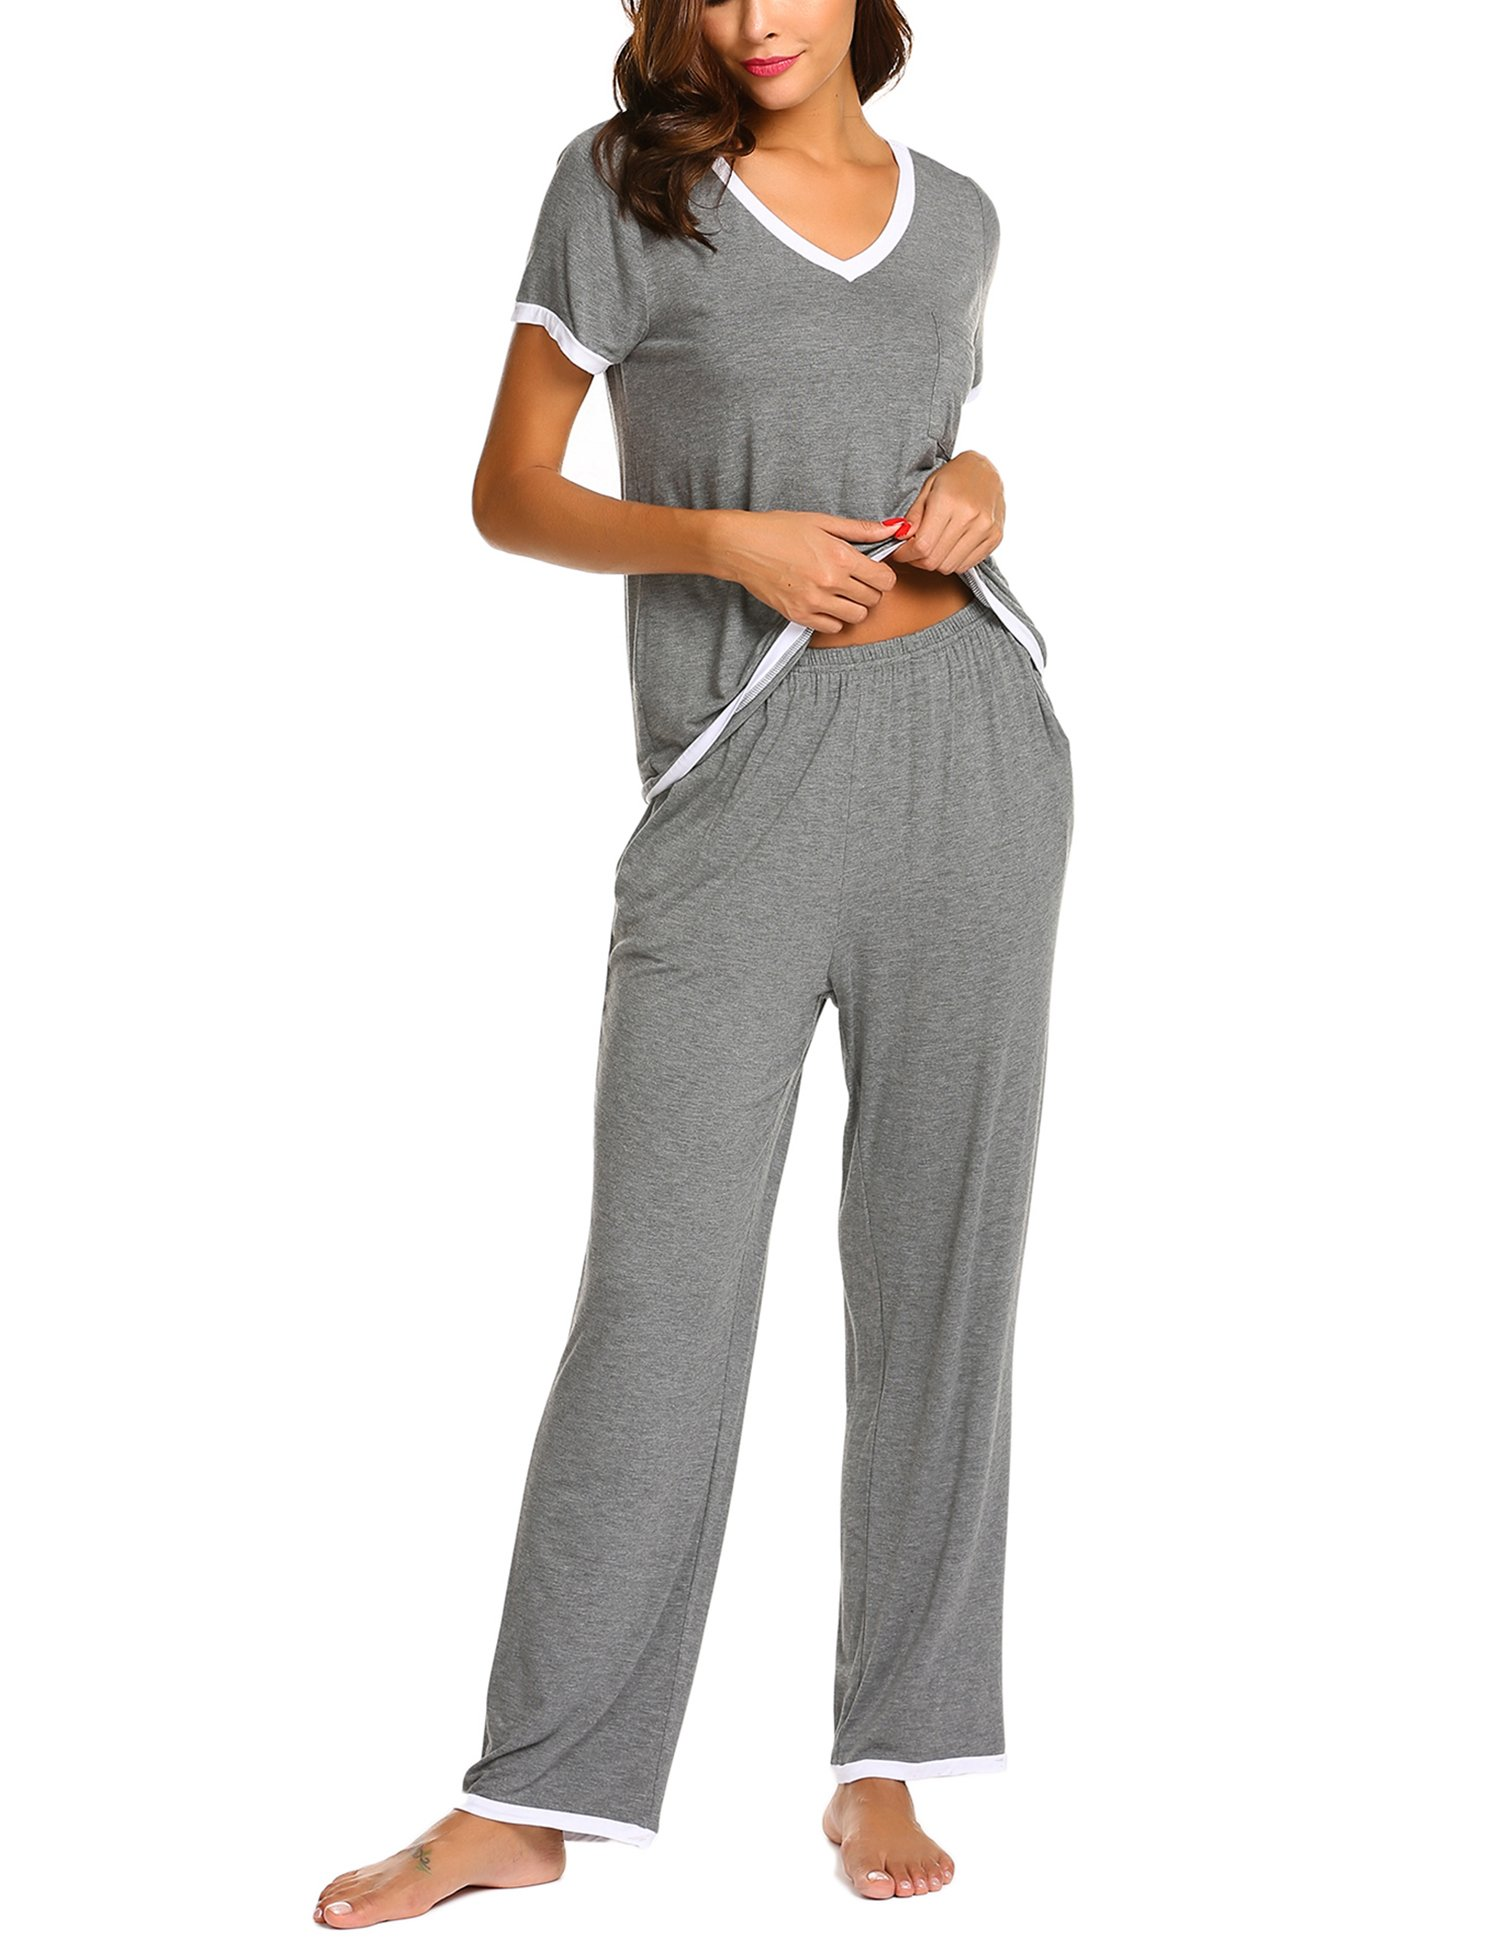 Ekouaer Women Pajamas Set V-Neck Short Sleeve Top and Elastic Waist Long Pants Lounge Sleepwear (Gray XL) by Ekouaer (Image #4)